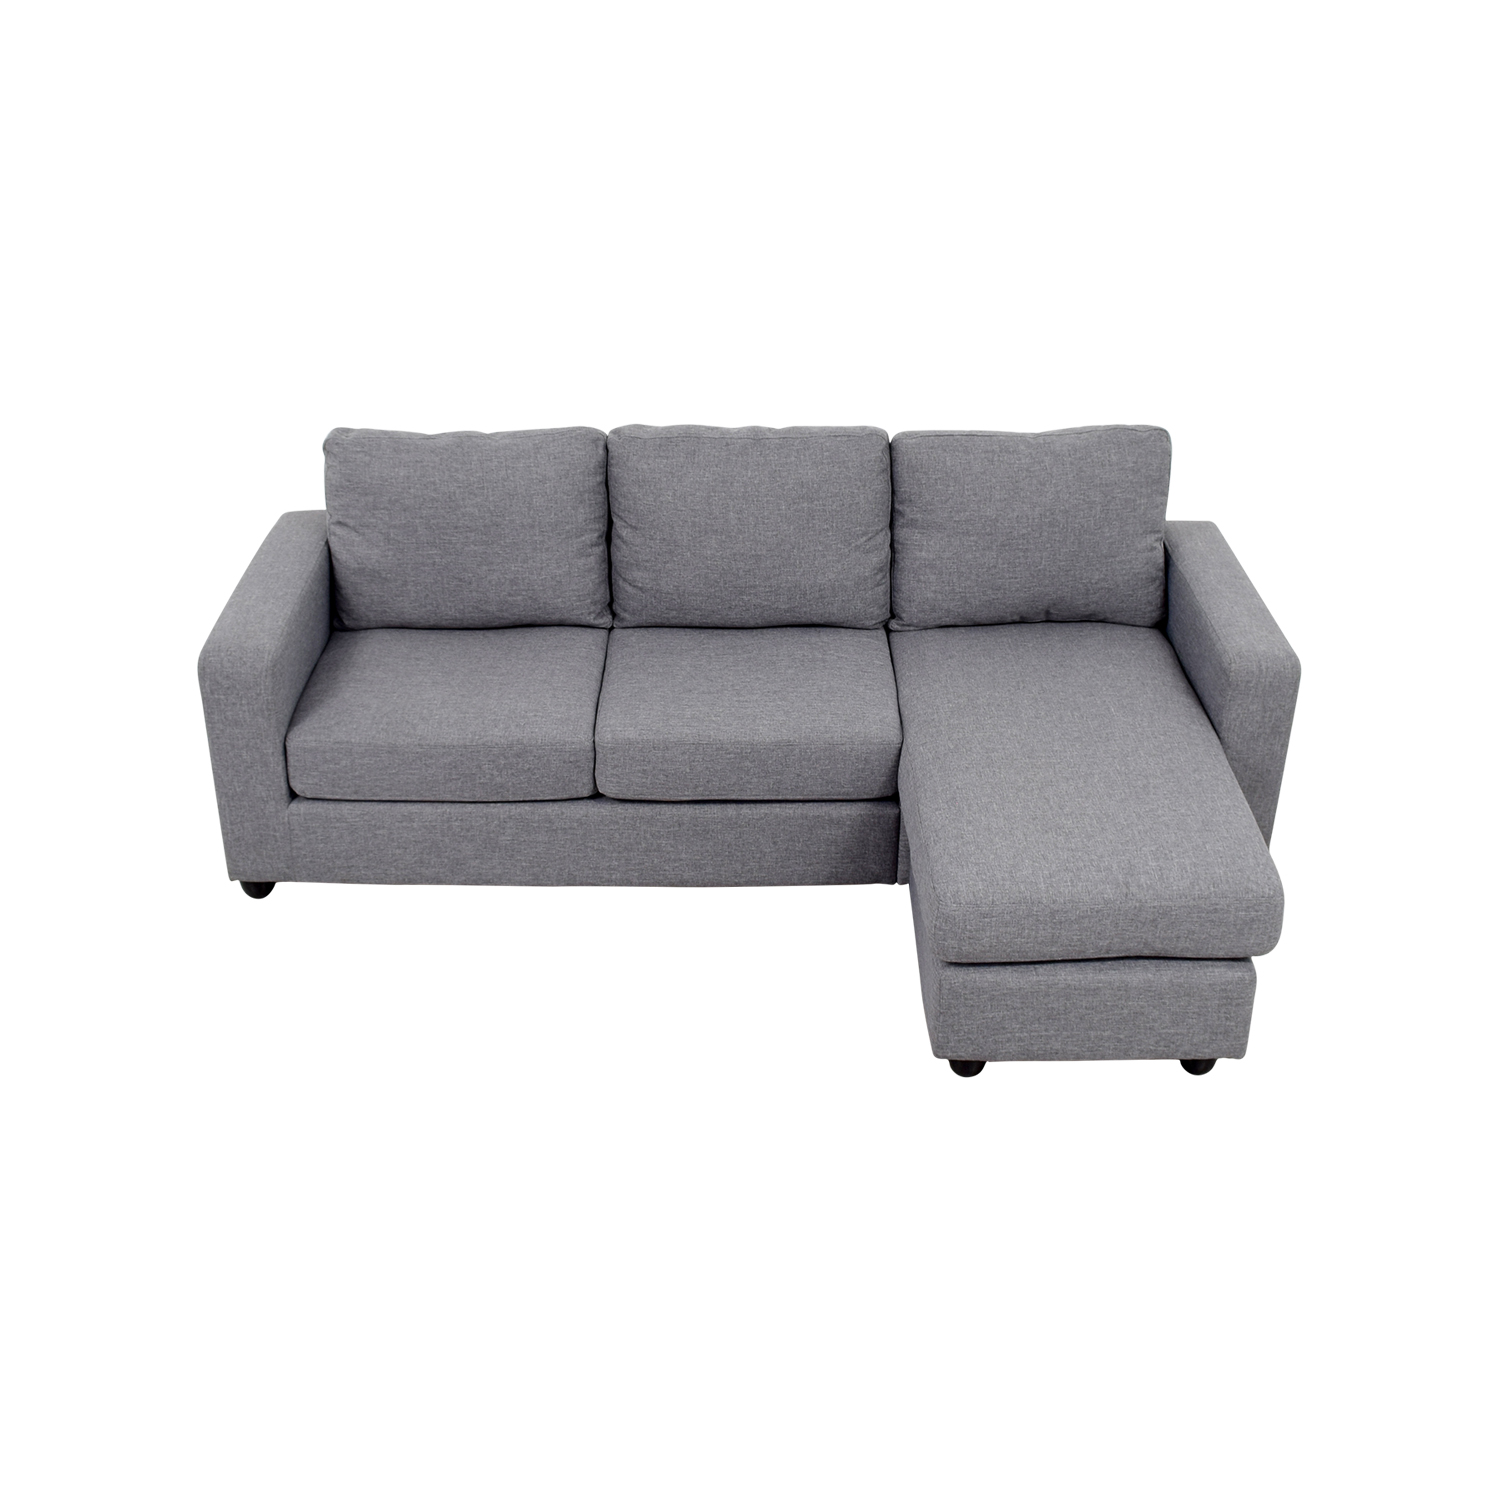 Sofa L Shape Dimensions 35 Off Grey L Shaped Chaise Couch Sofas